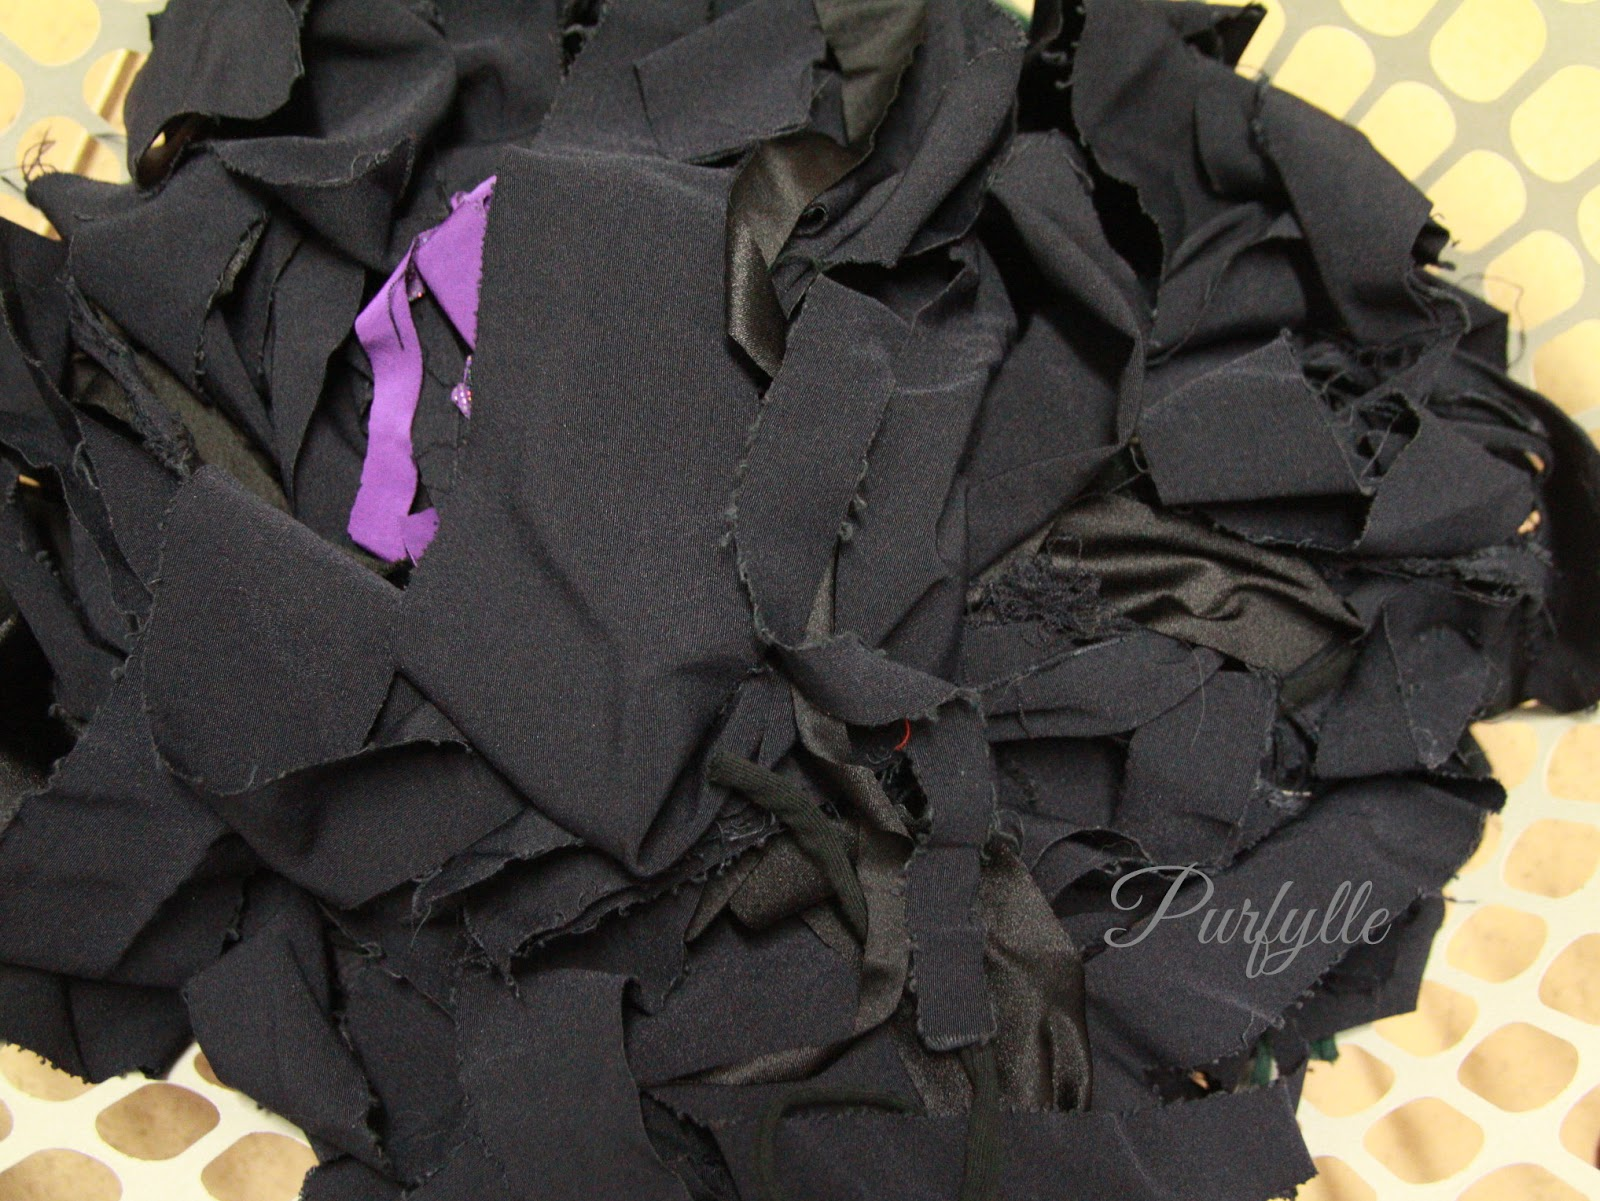 discard small fabric scraps